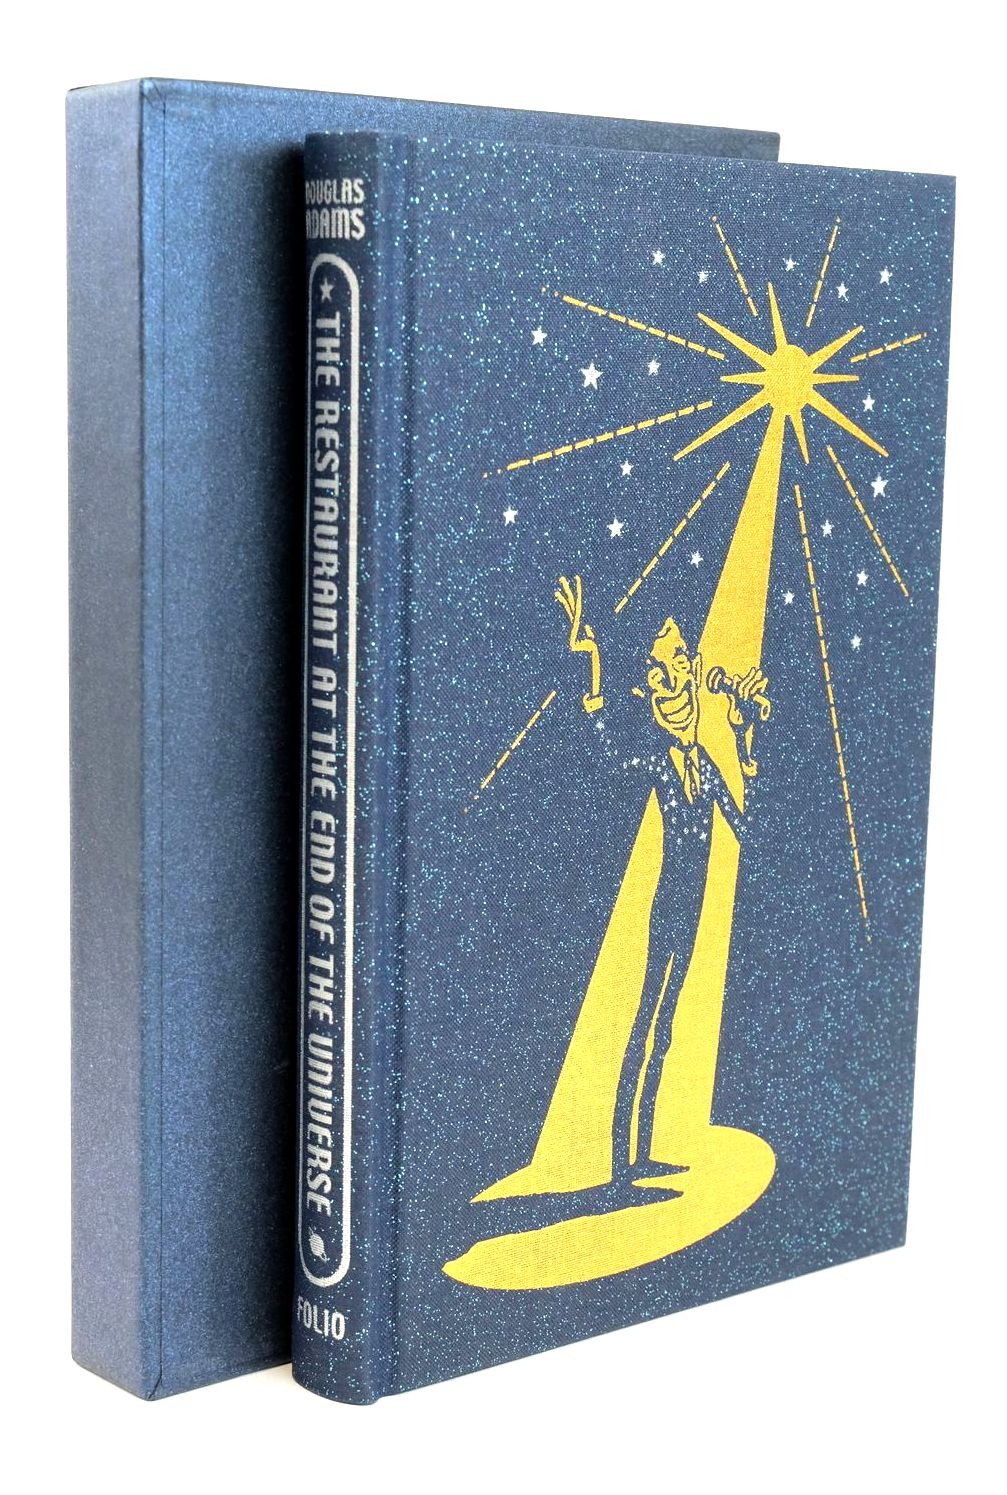 Photo of THE RESTAURANT AT THE END OF THE UNIVERSE written by Adams, Douglas Roberts, Adam illustrated by Burton, Jonathan published by Folio Society (STOCK CODE: 1319010)  for sale by Stella & Rose's Books